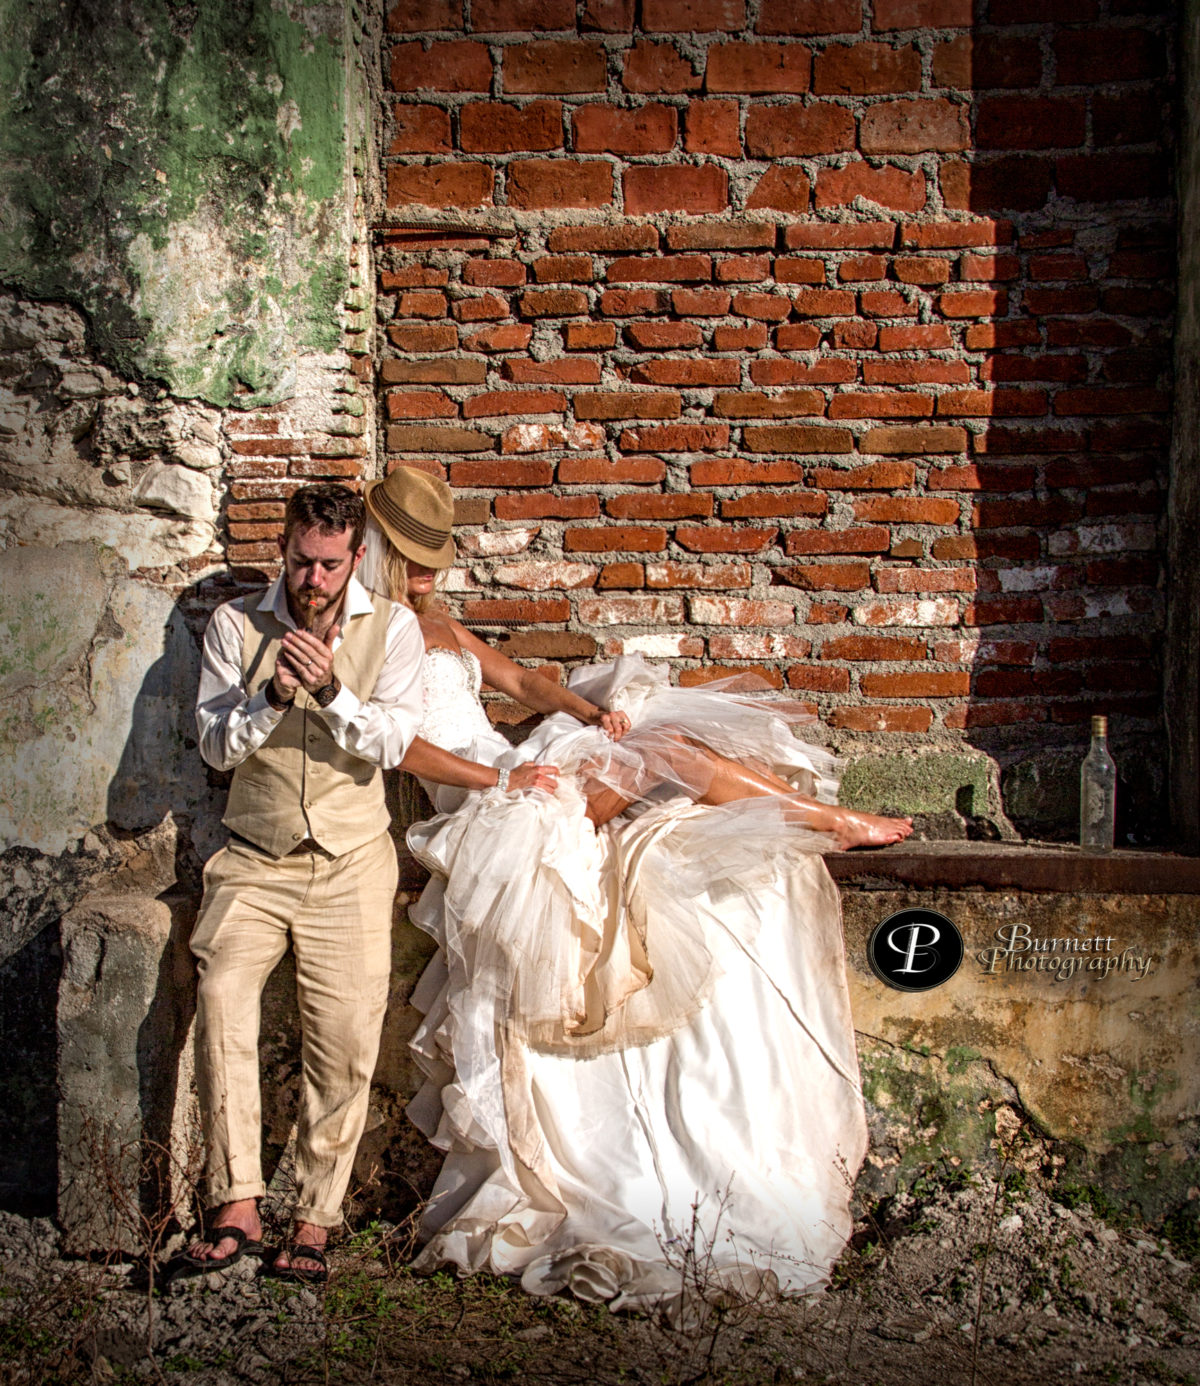 Wedding in Cuba: bride and groom Cayo Santa Maria, Cuba by Burnett Photography